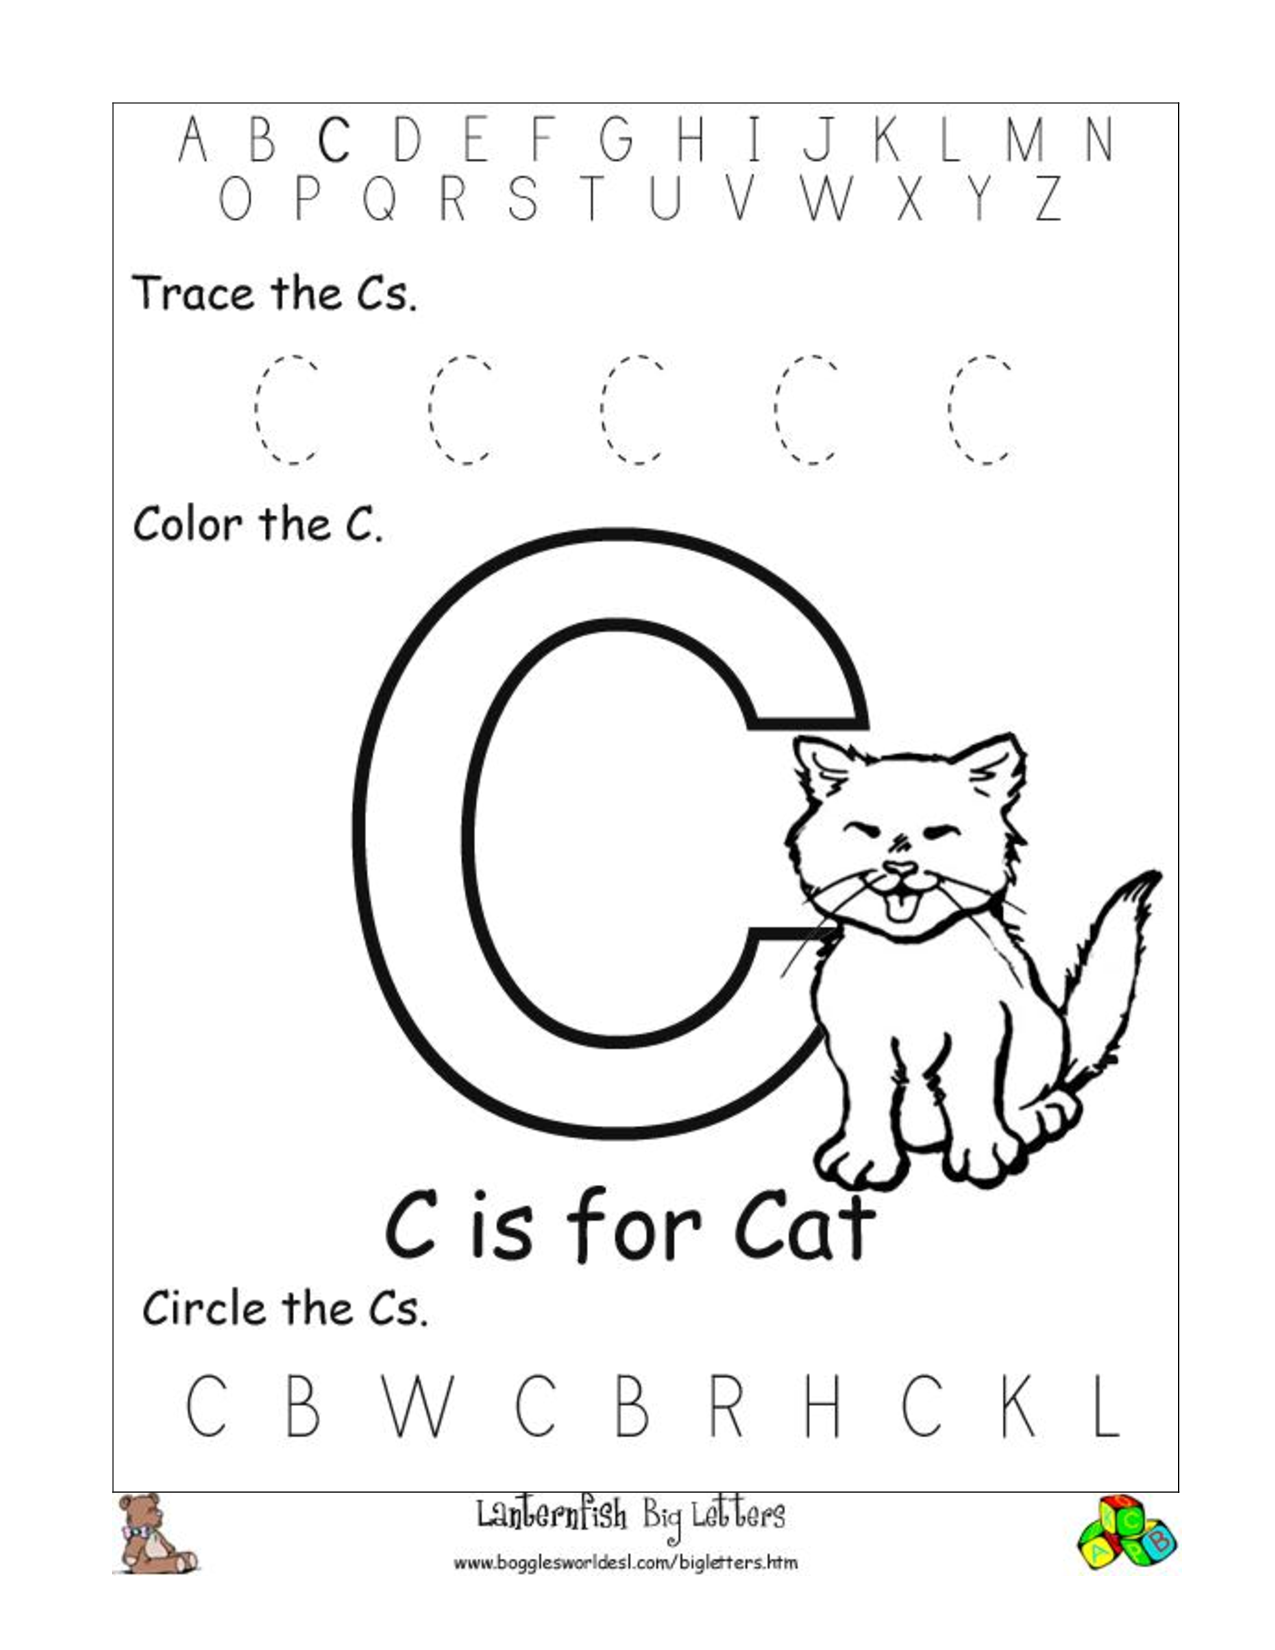 Worksheet Letter C Worksheets Preschool 5 best images of printable kindergarten worksheets letter c free worksheets